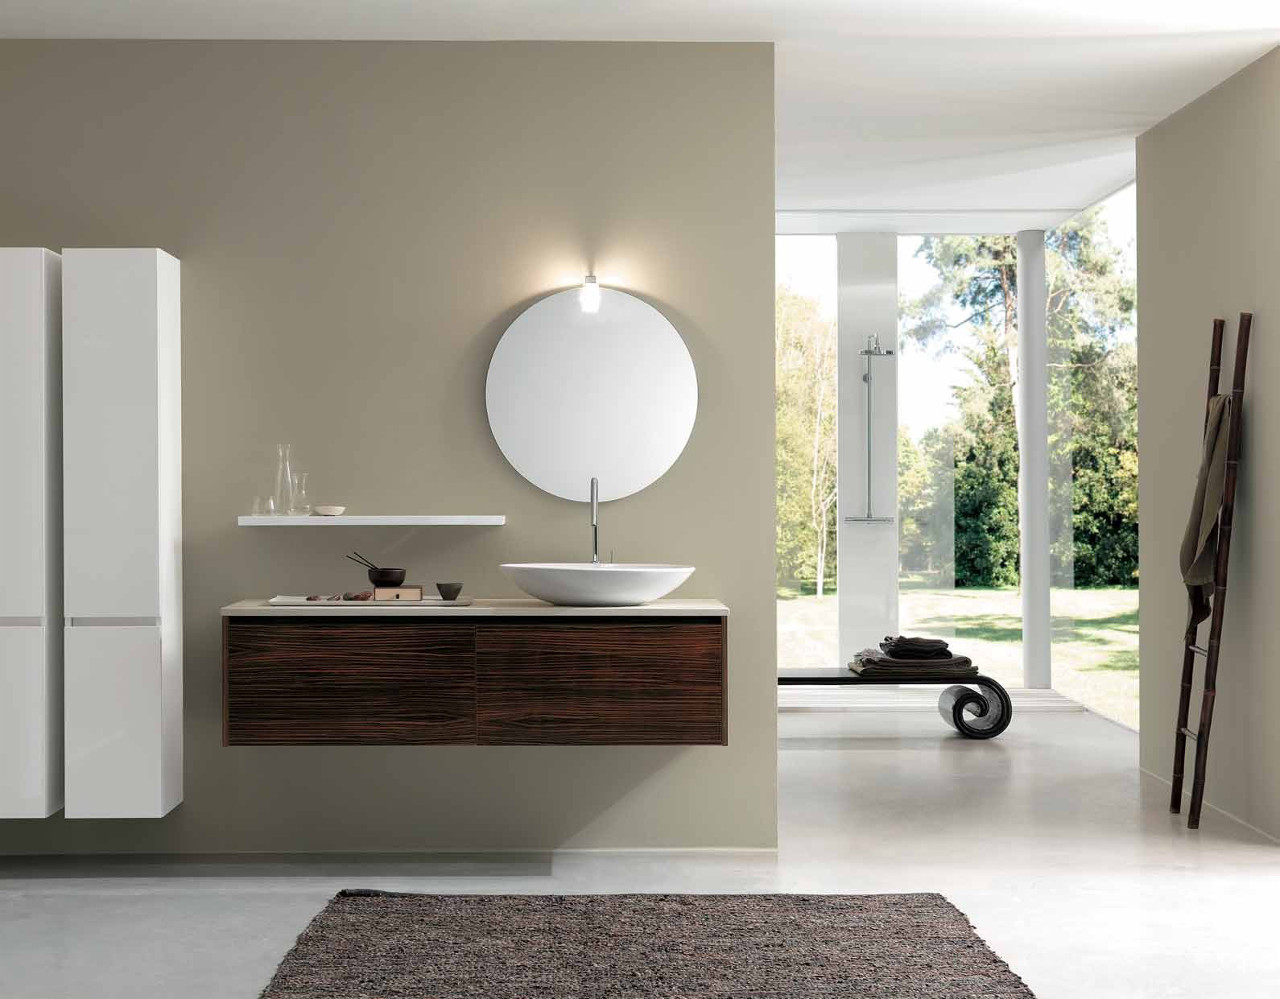 Tende per cucina rustica on line for Mobili bagno on line